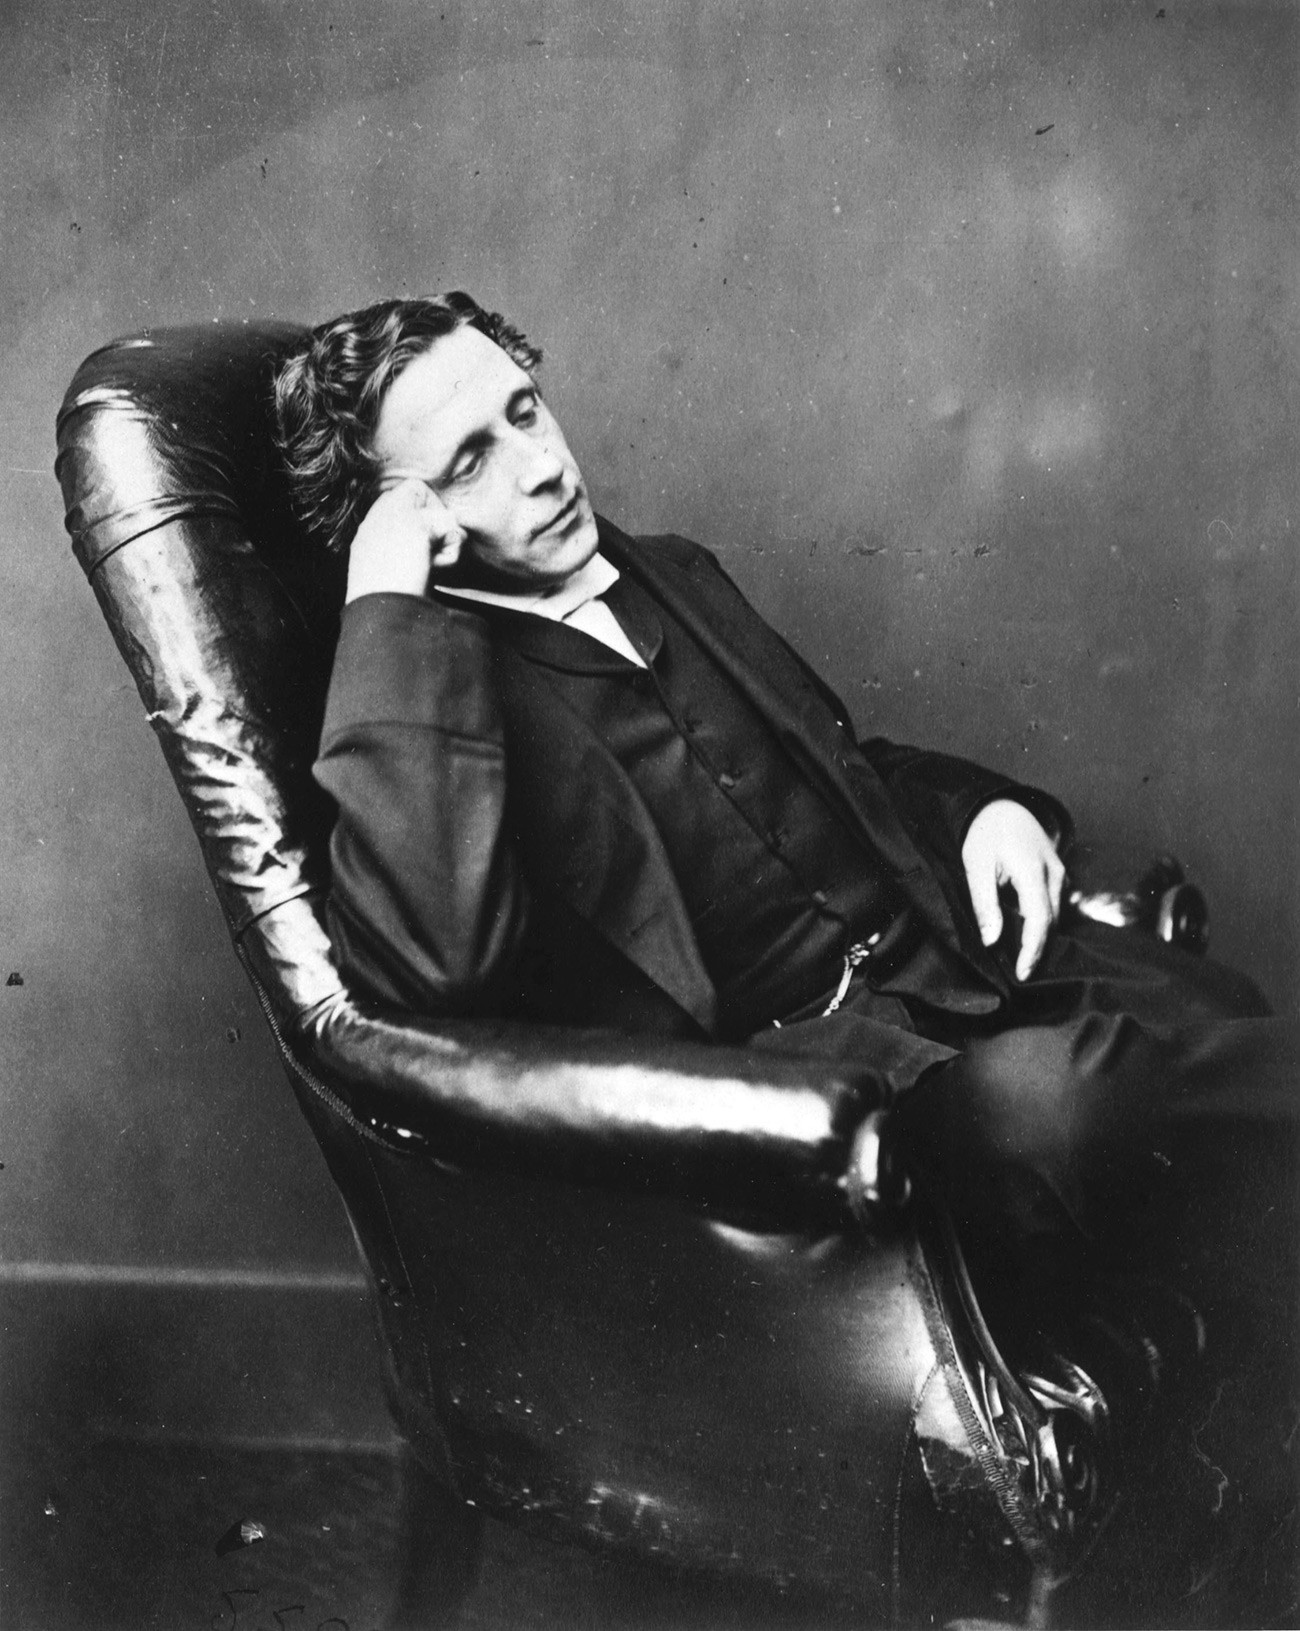 Lewis Carroll, self-portrait, c 1880s